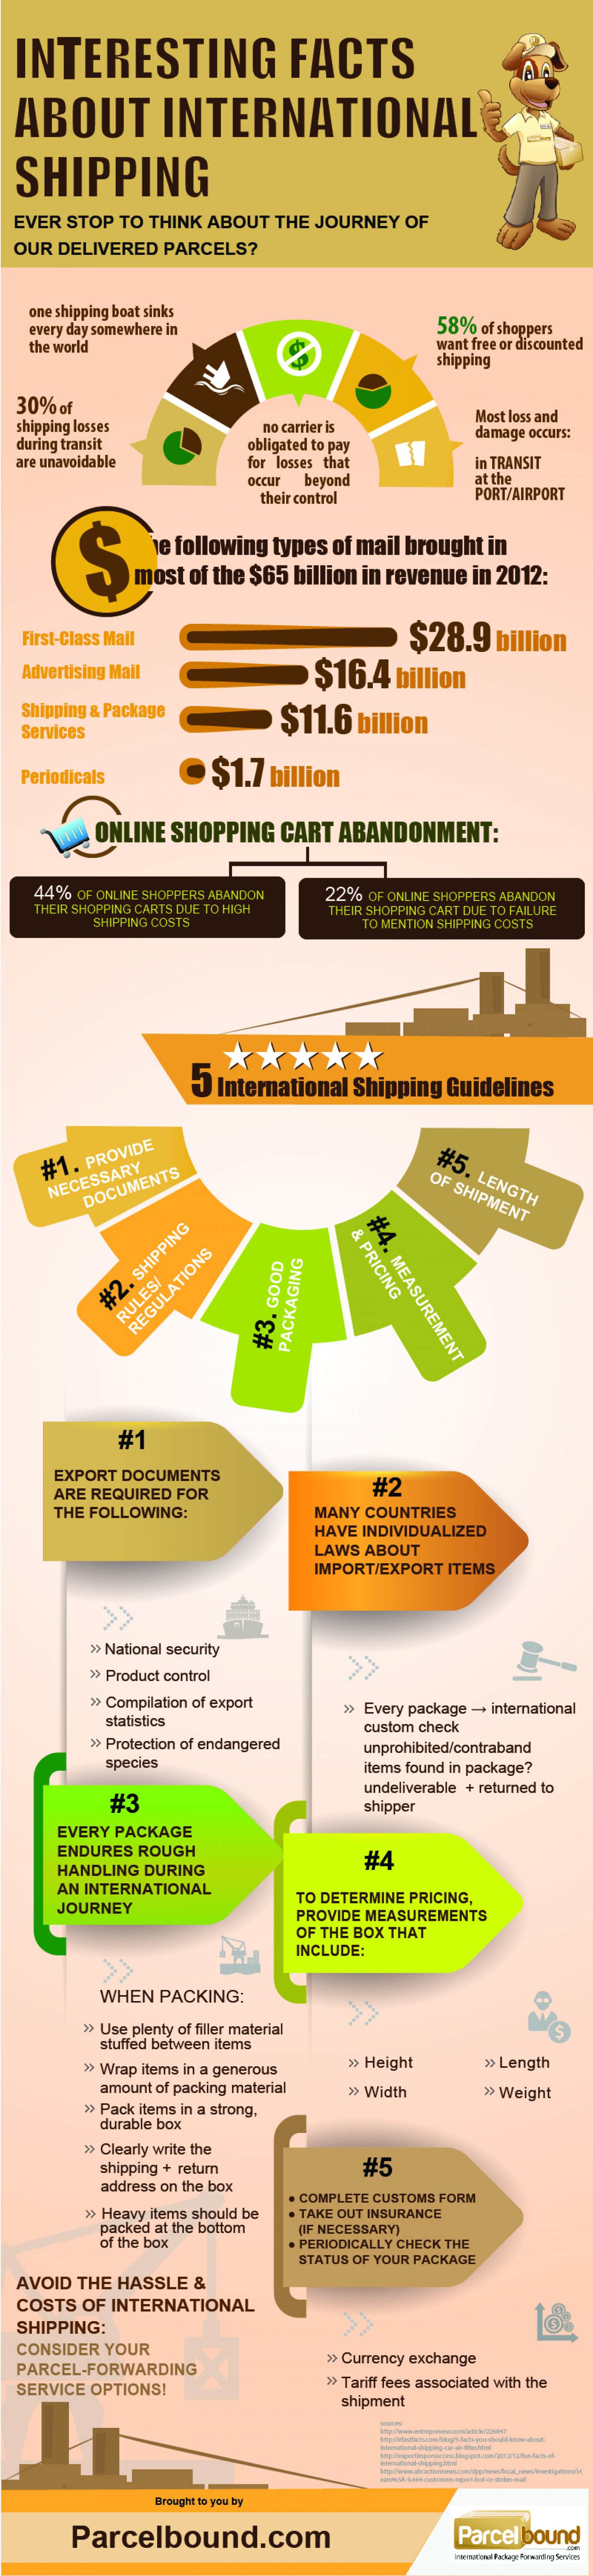 Interesting Facts About International Shipping Infographic